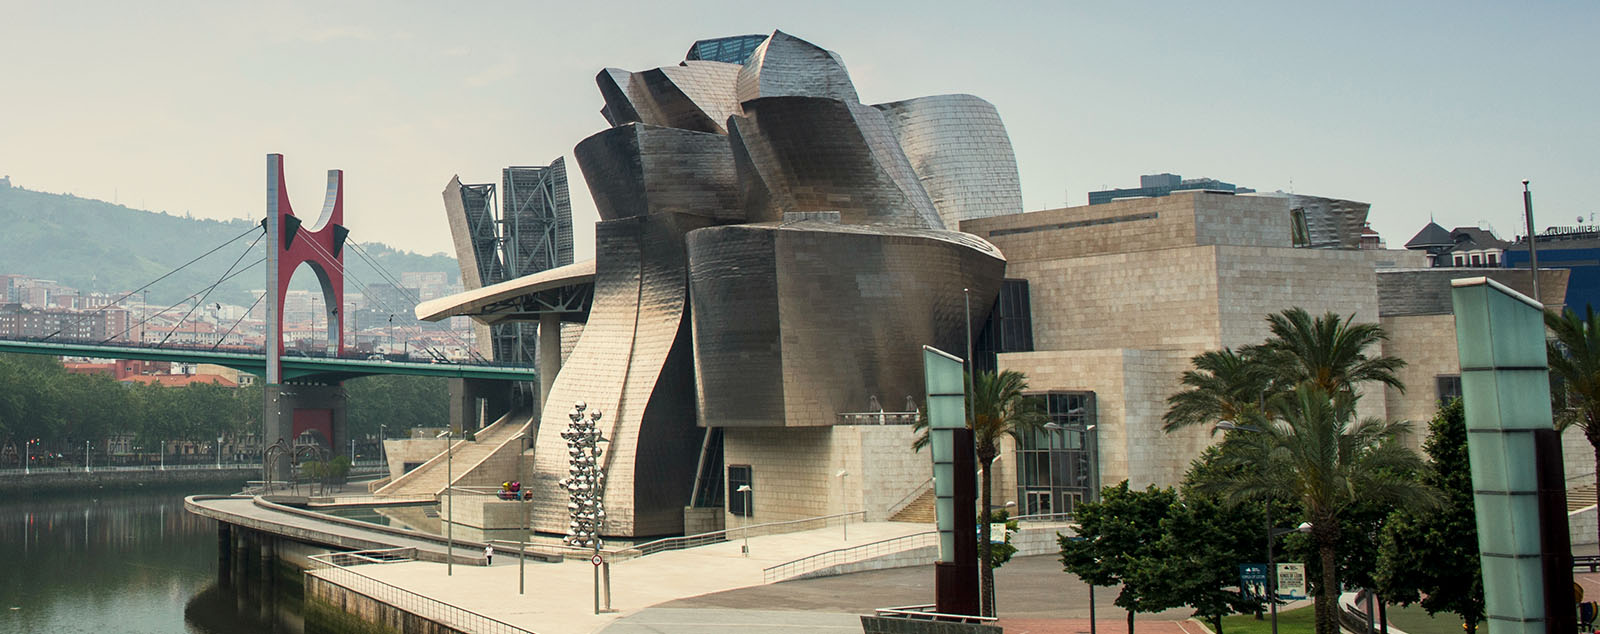 Shint metallic shapes form a daring facade for the Bilbao Guggenheim Museum